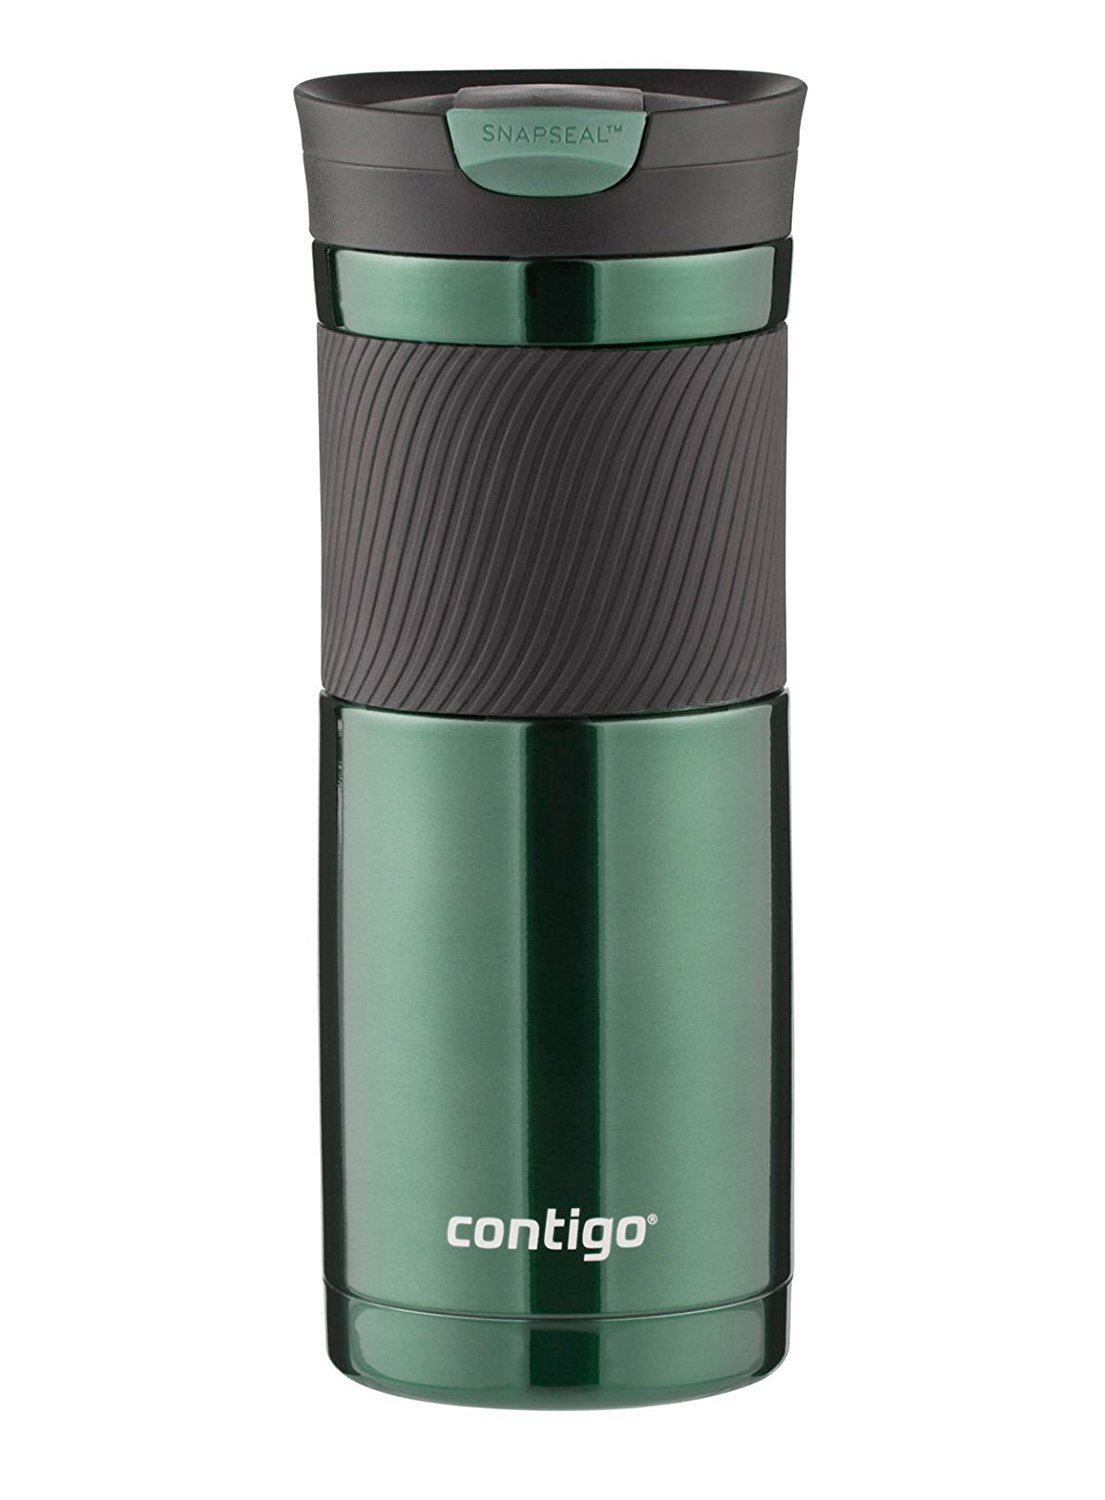 Contigo SnapSeal Byron Vacuum Insulated Stainless Steel Travel Mug